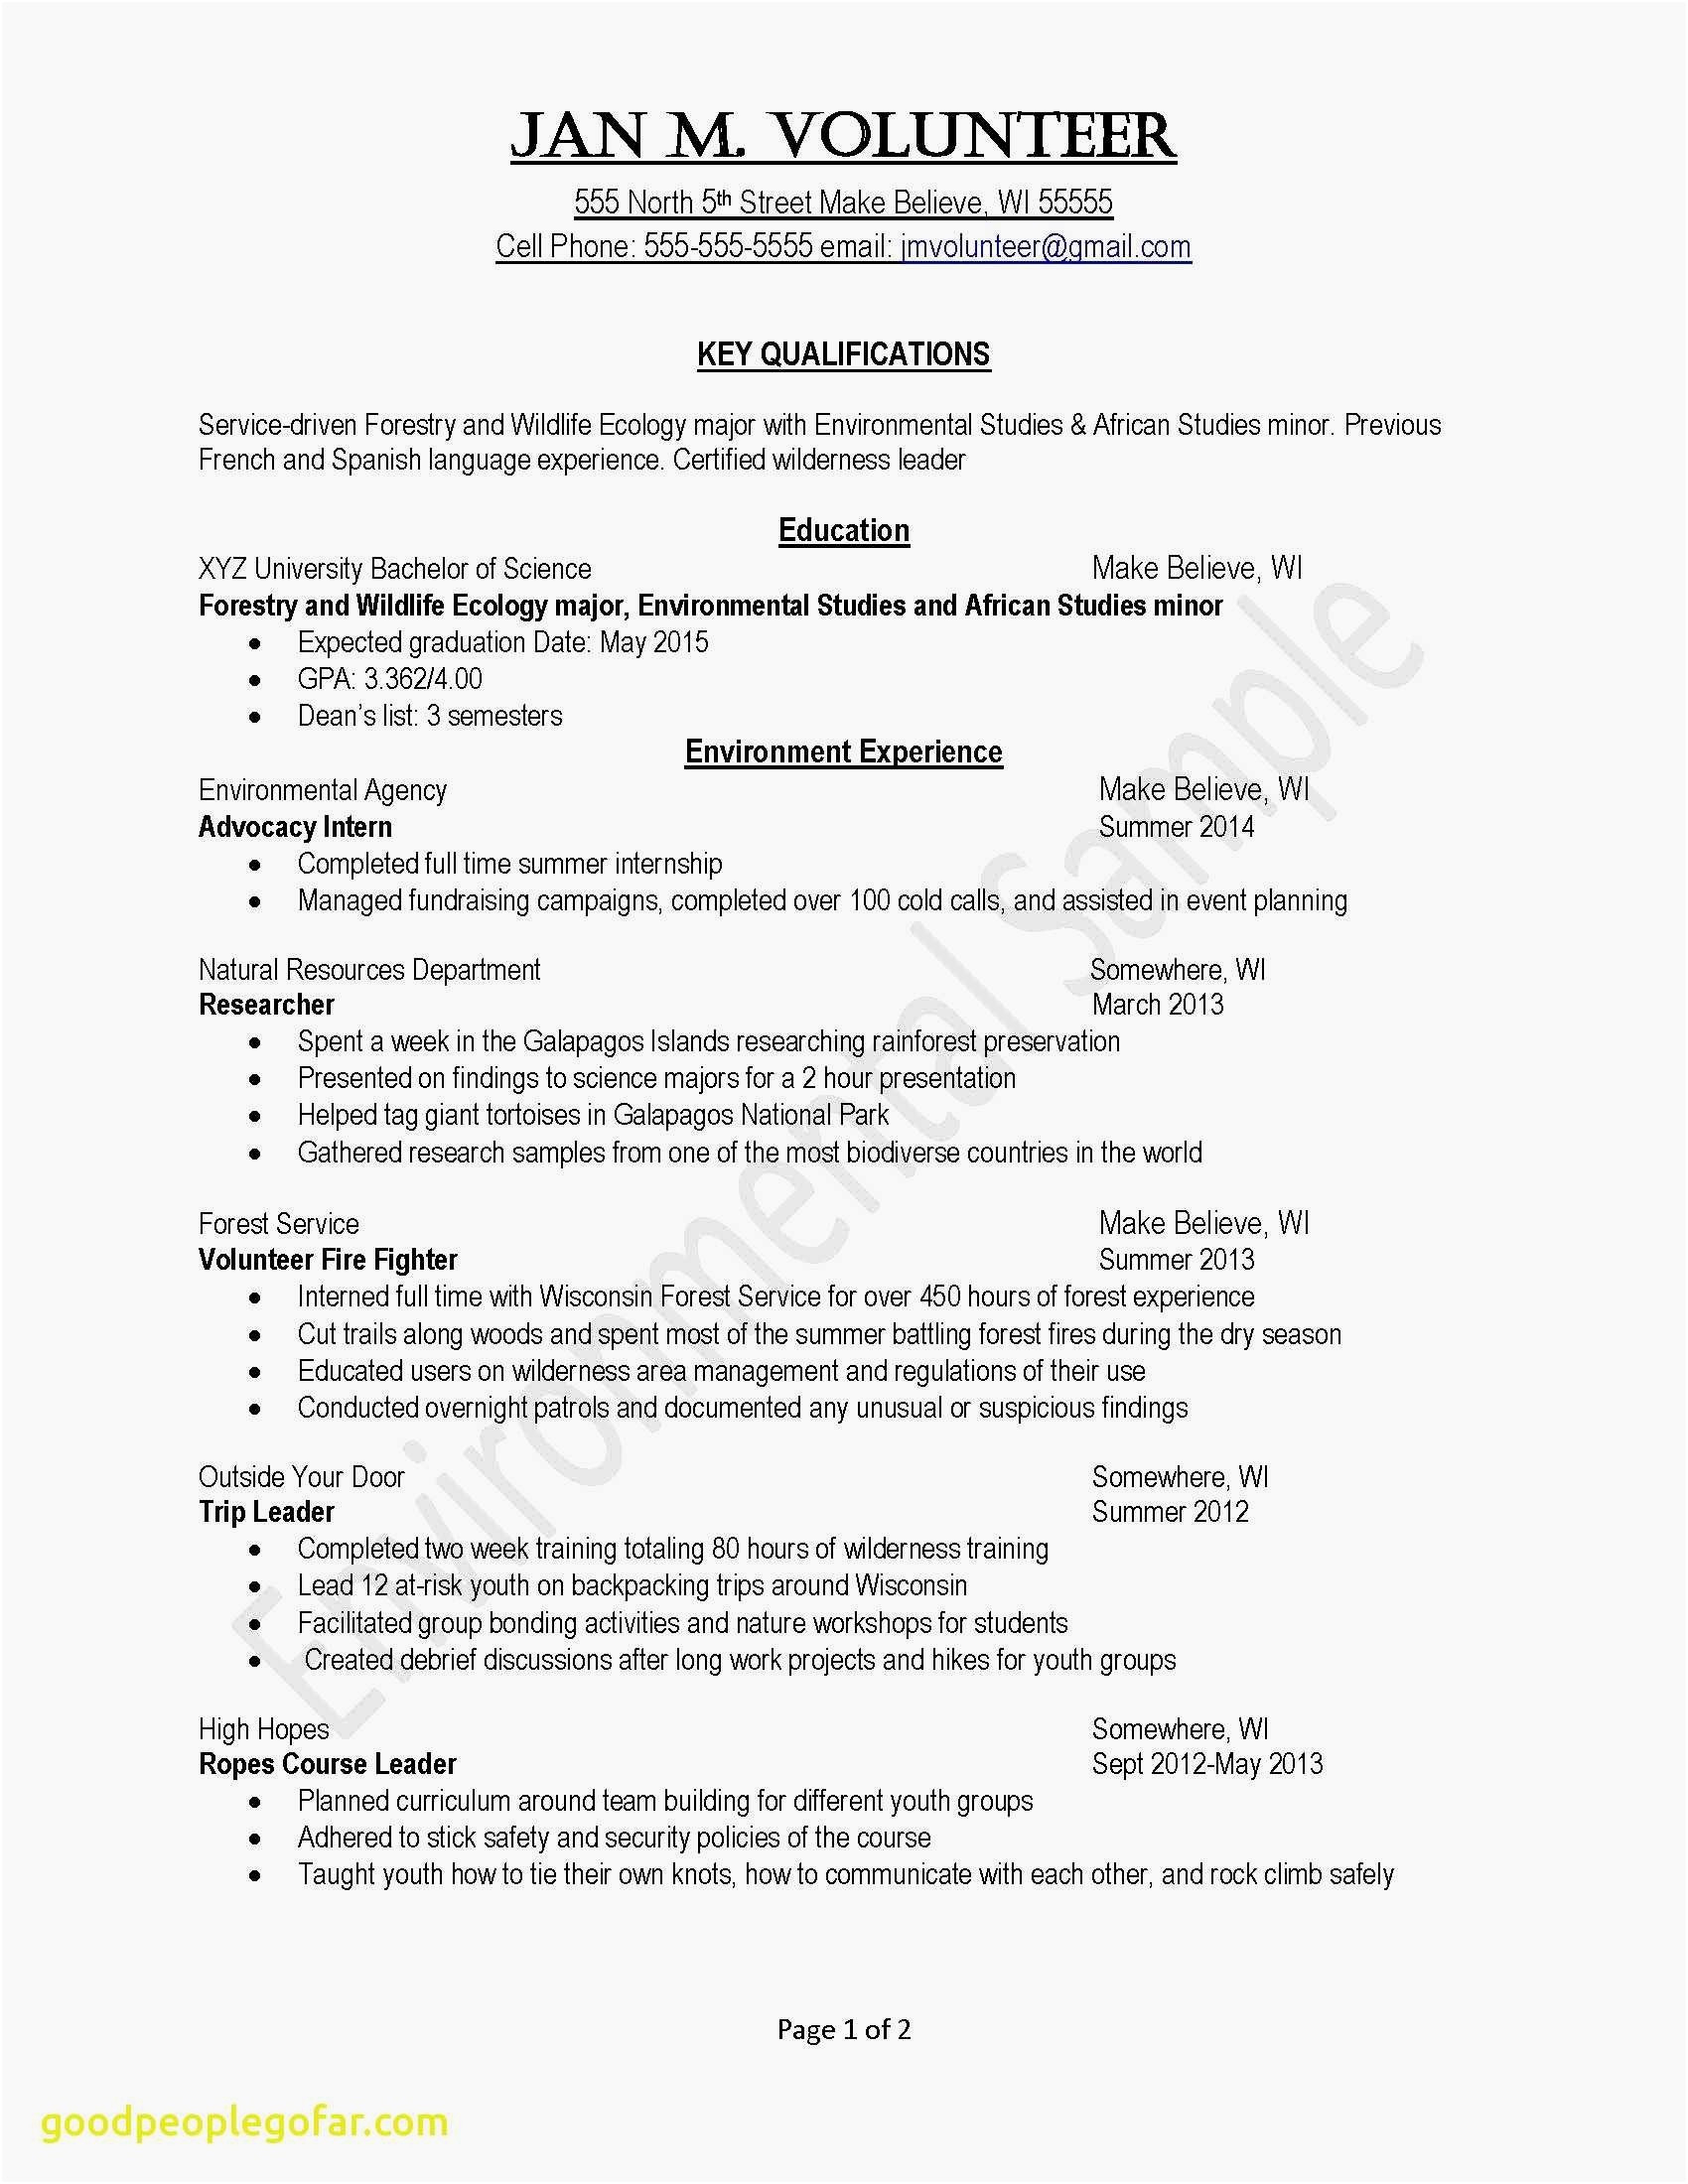 College Student Resume for Internship - Resume Examples for College Students Internships Popular Fresh